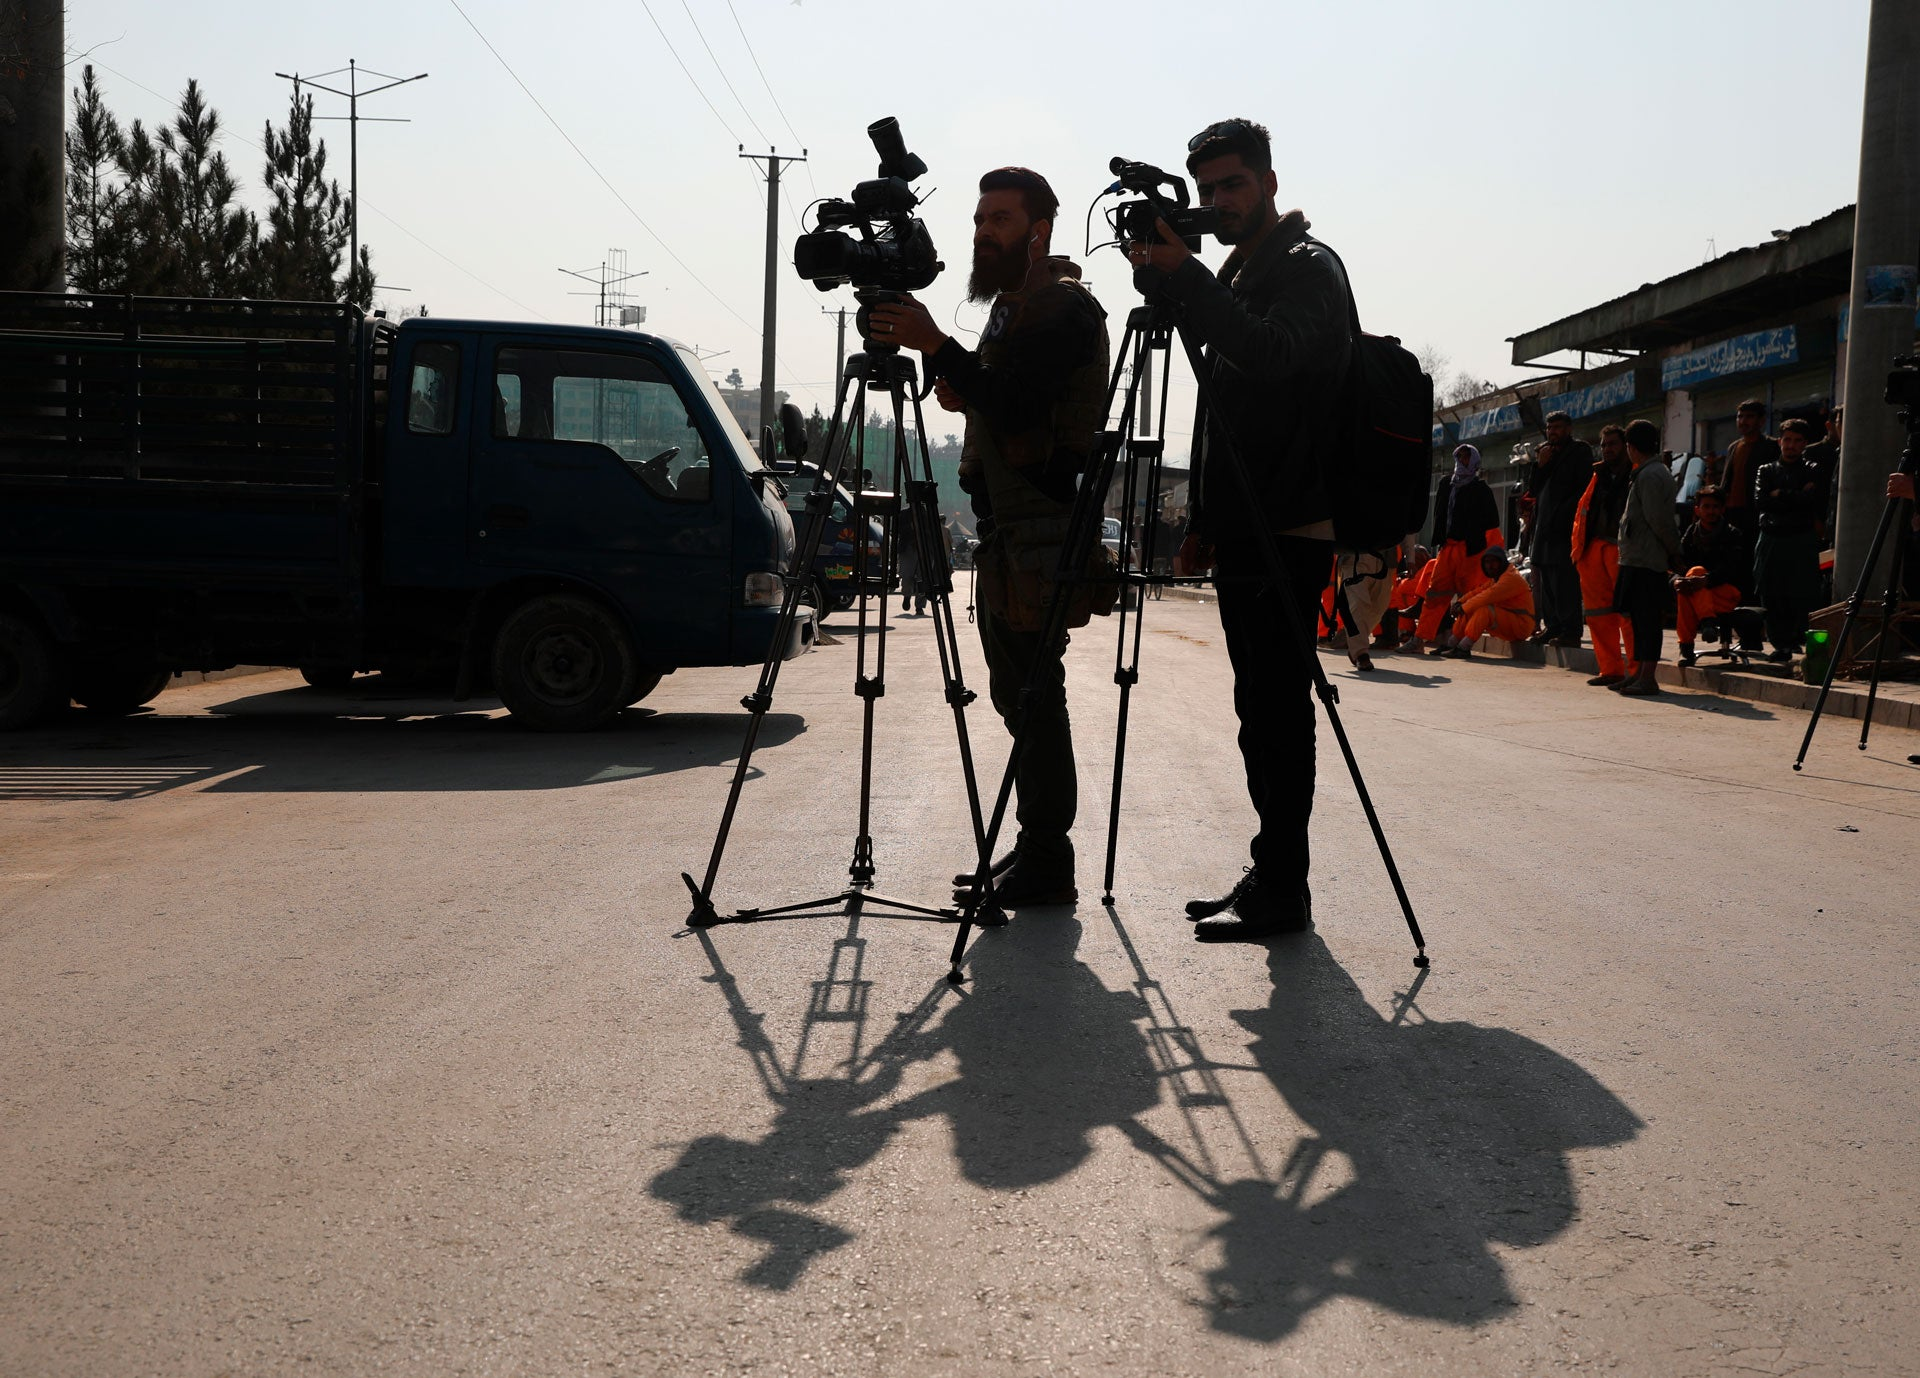 Afghanistan: Taliban Target Journalists, Women in Media